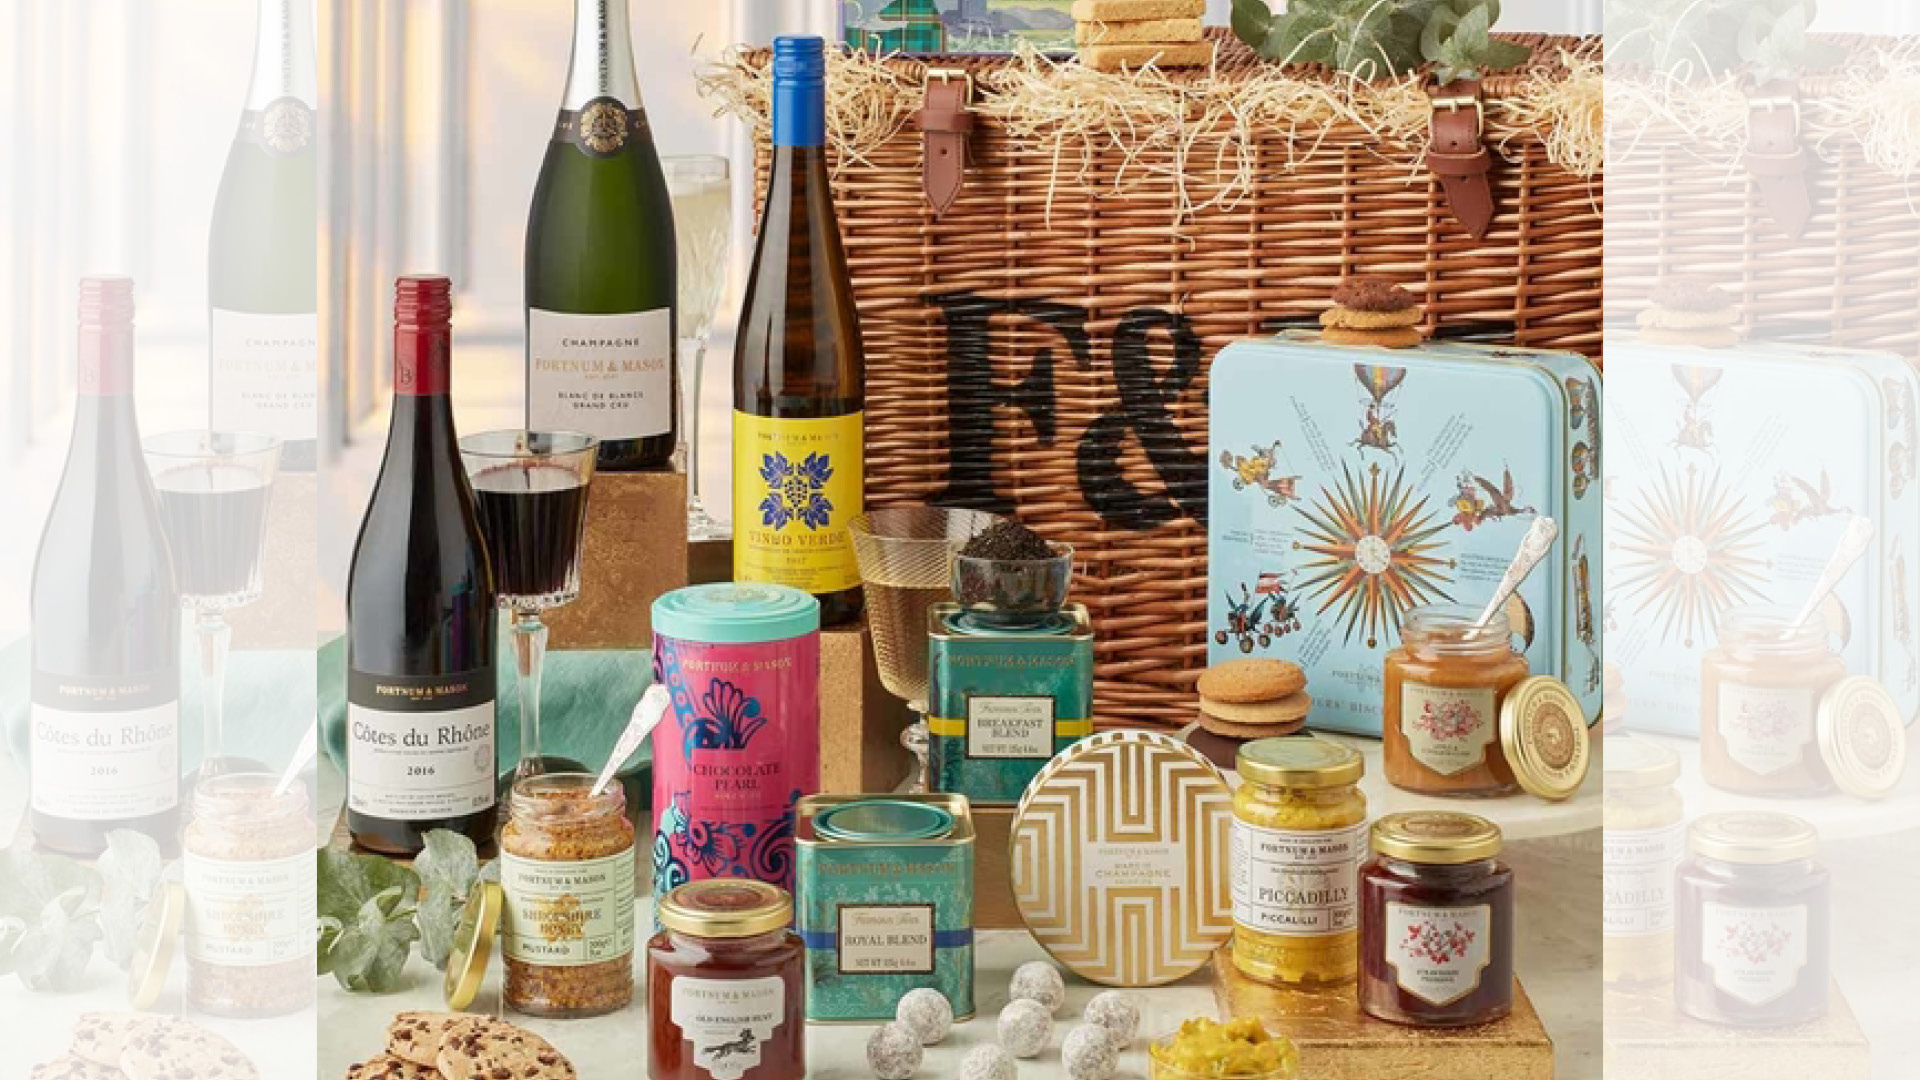 SHARE YOUR VIEW AND WIN A FORTNUM AND MASON FOOD HAMPER